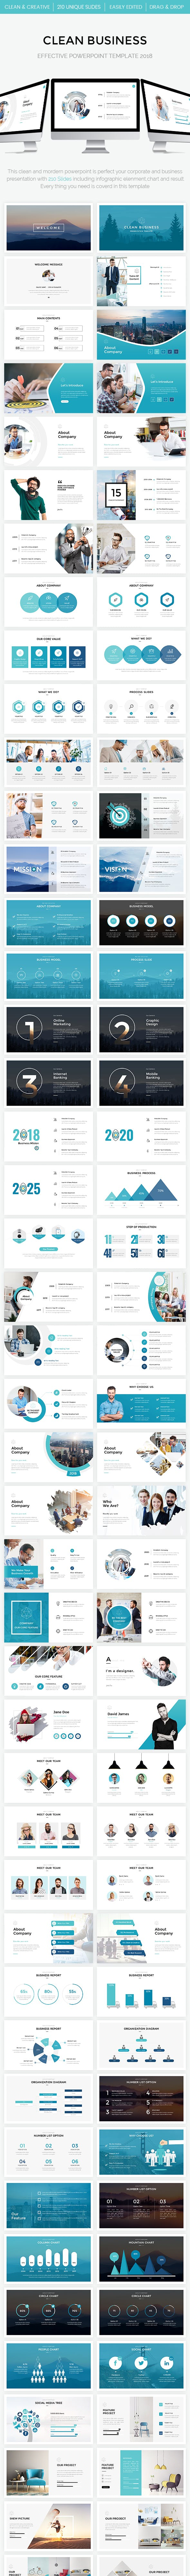 clean business powerpoint template 2018 by williamhenry989